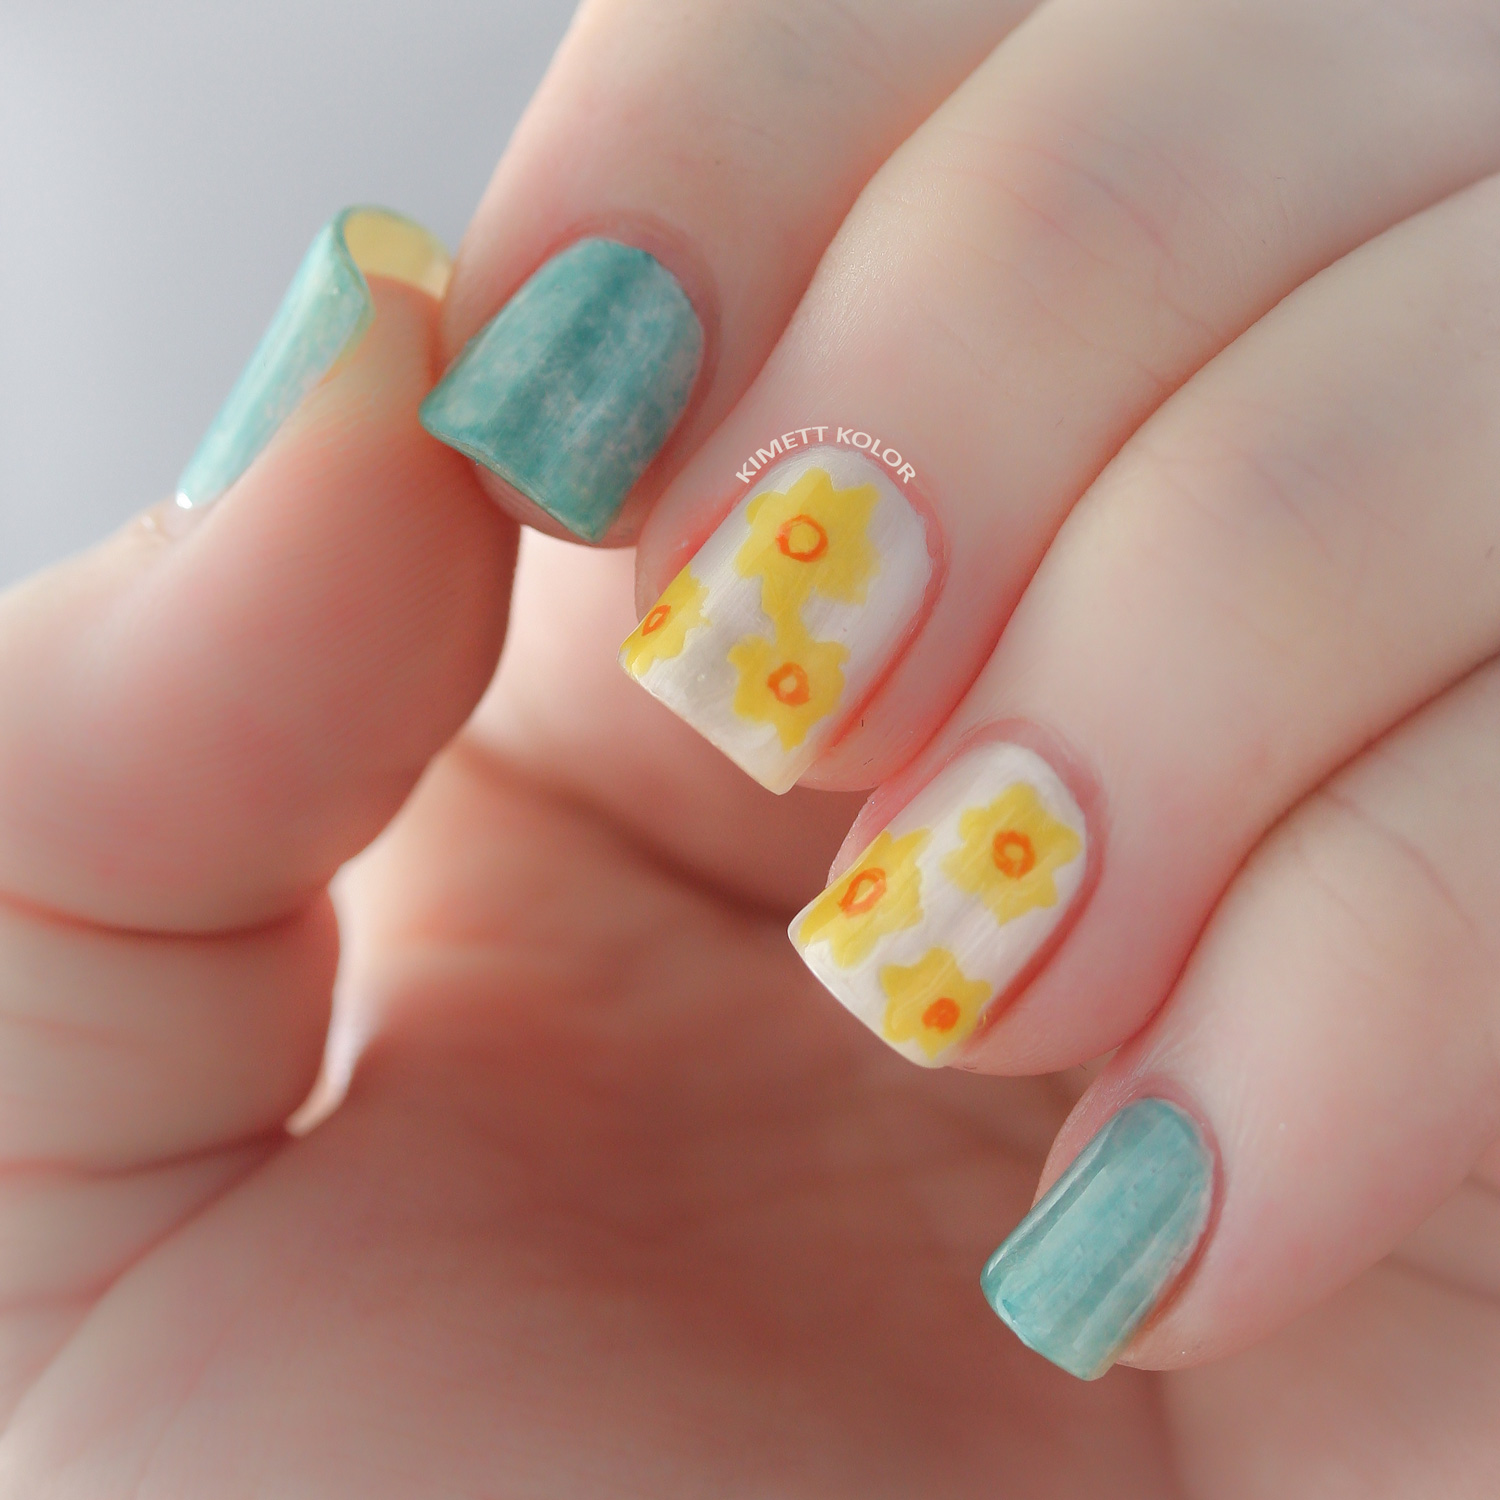 Aquamarine and Daffodil March Nail Art by KimettKolor